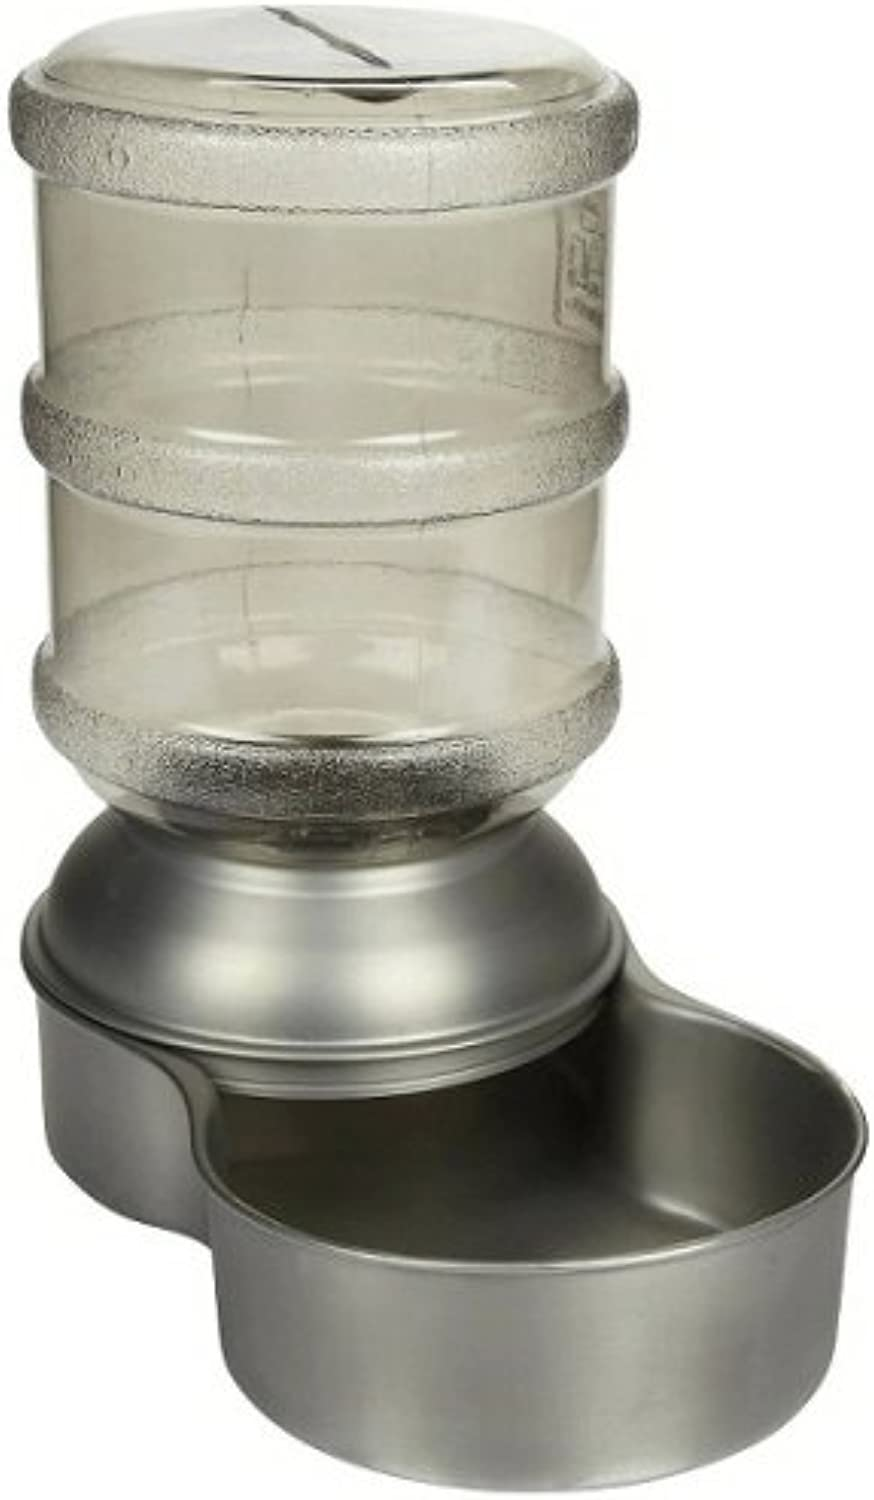 Petmate Stainless Steel Replendish Waterer Small 1 Gallon